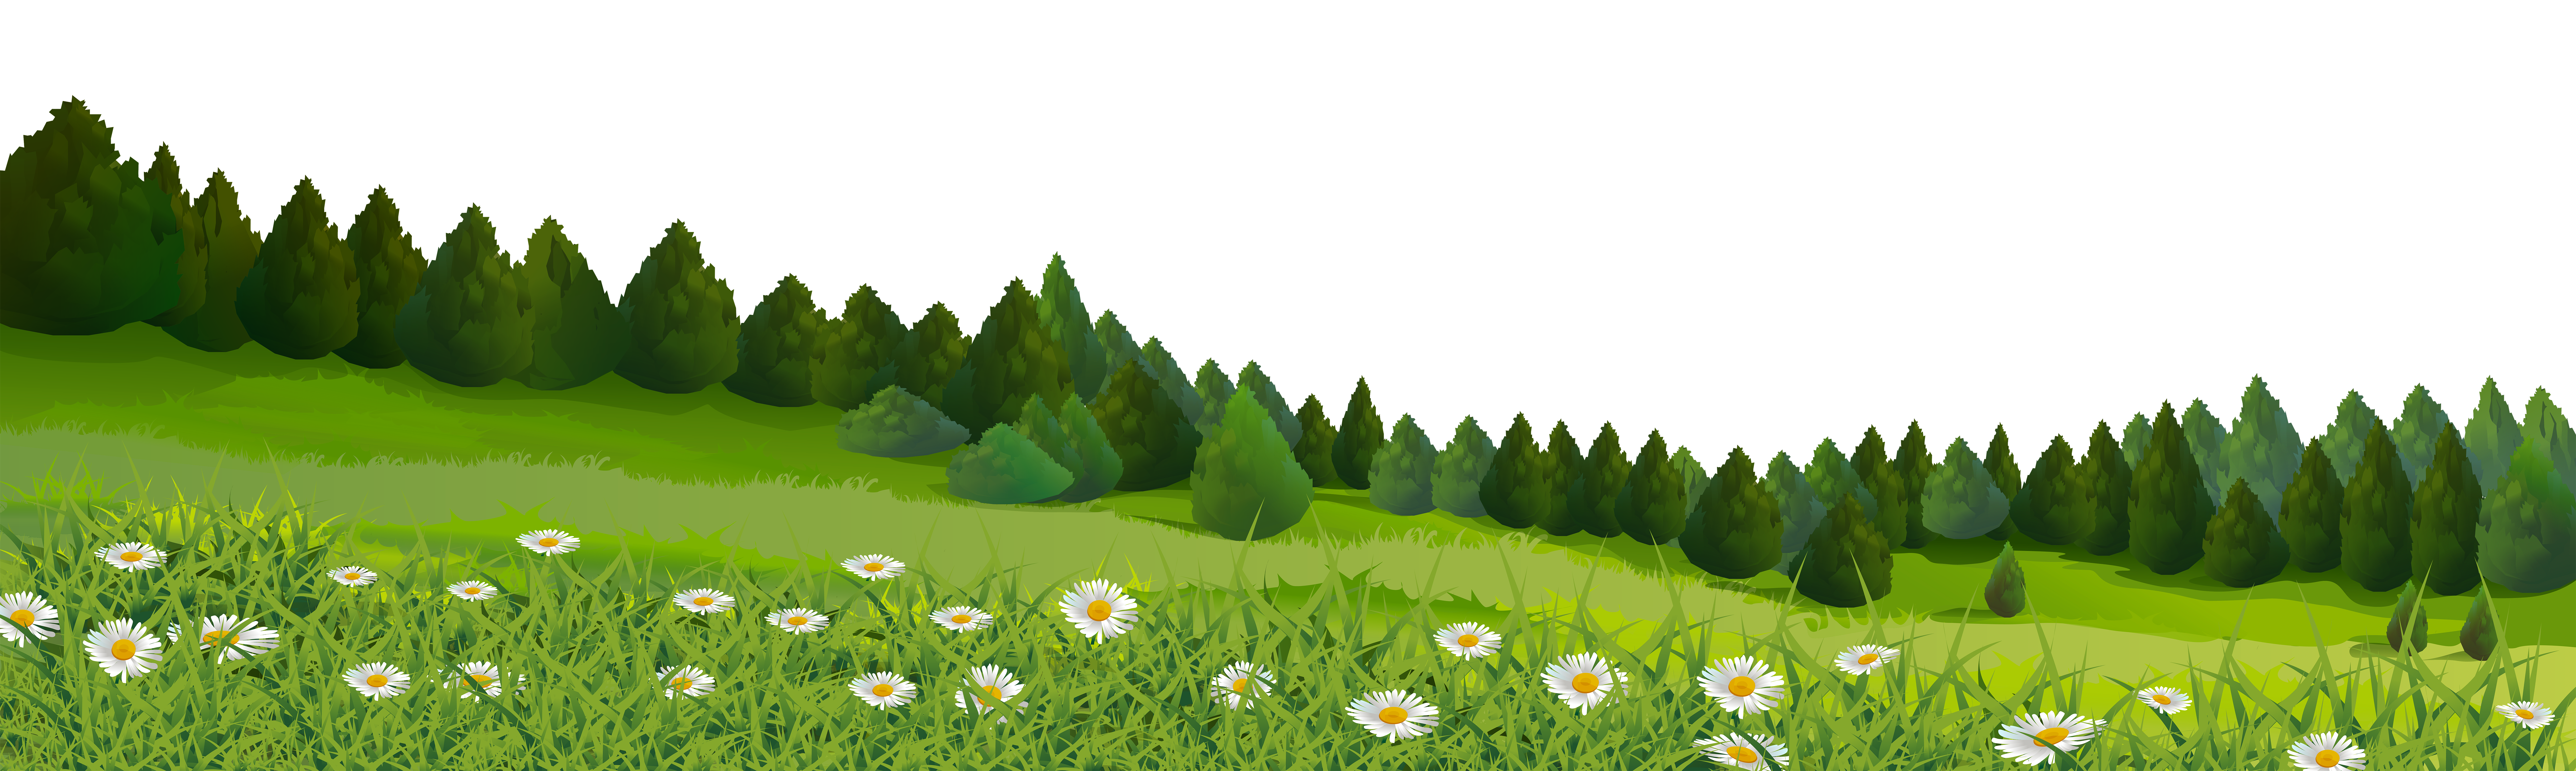 Trees and Grass PNG Clip Art Image.